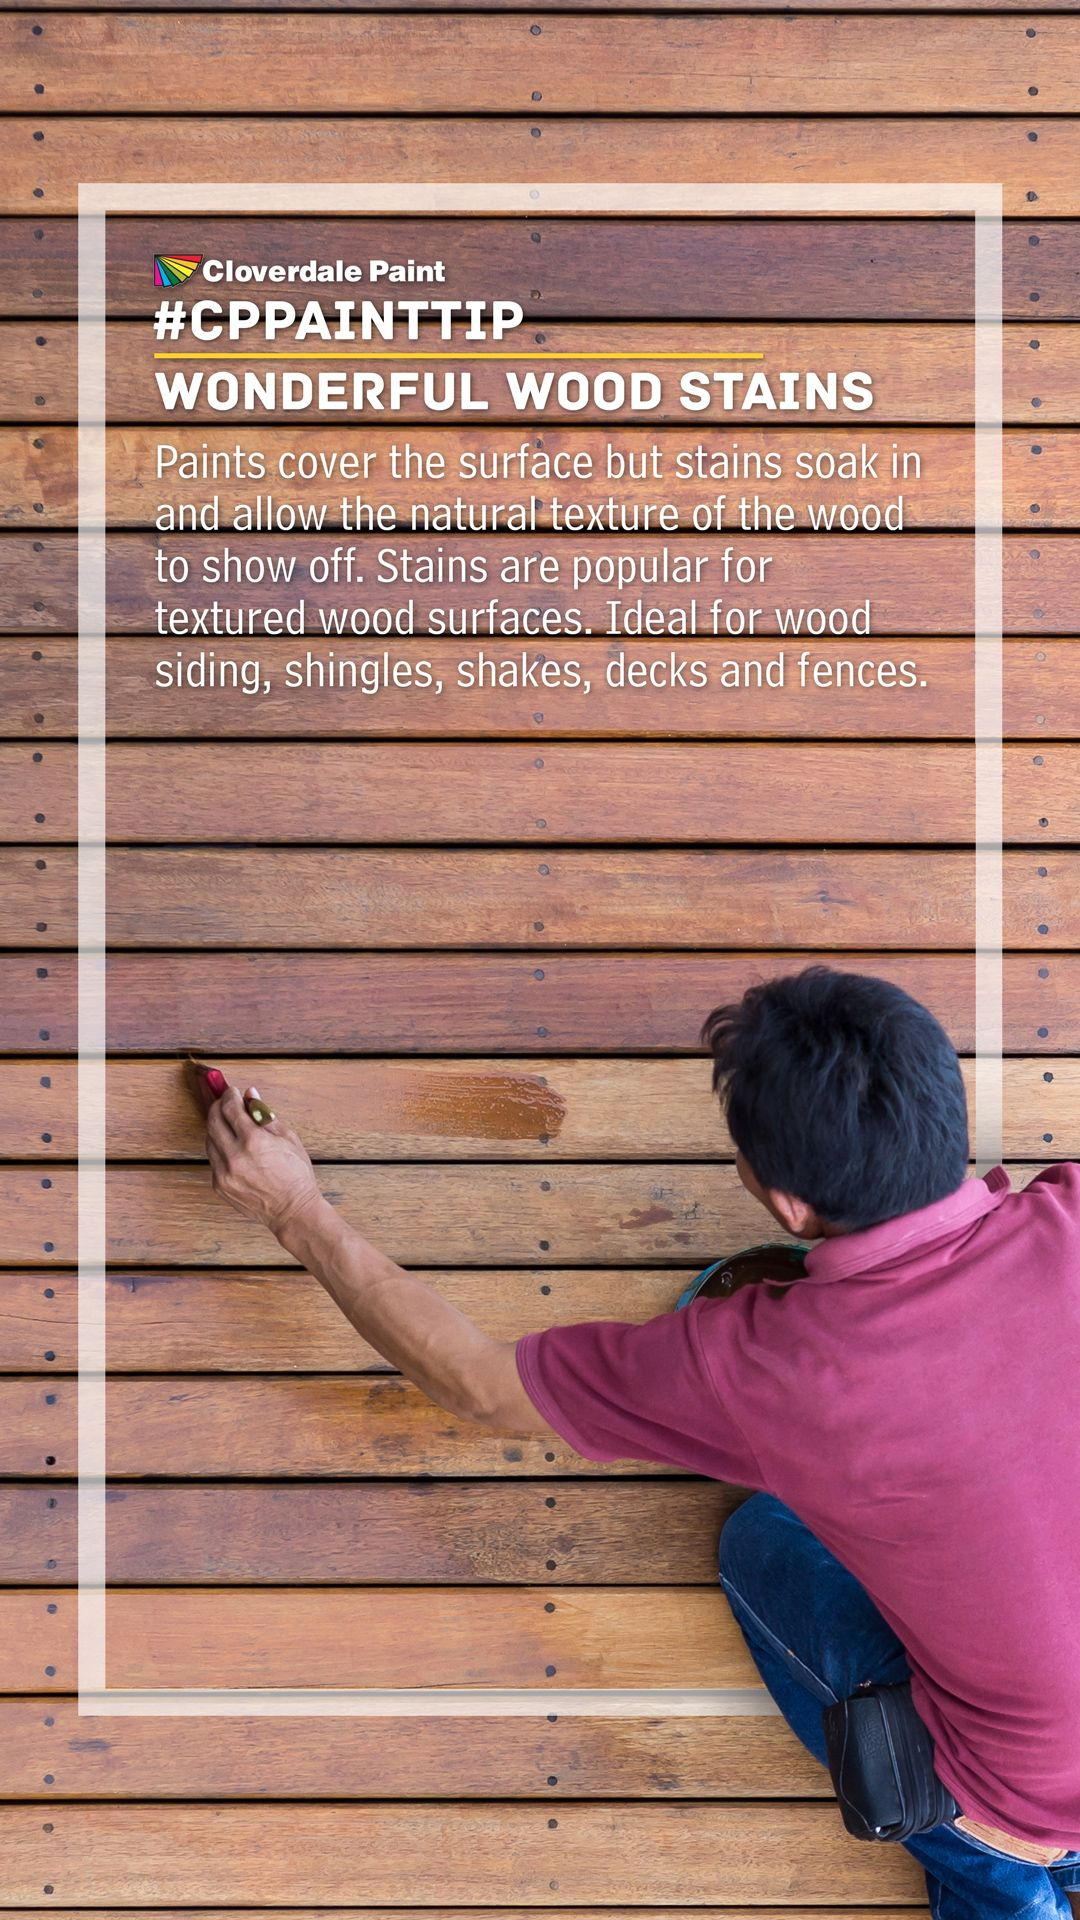 Cppainttip Wonderful Wood Stains Staining Wood Natural Texture Wood Surface